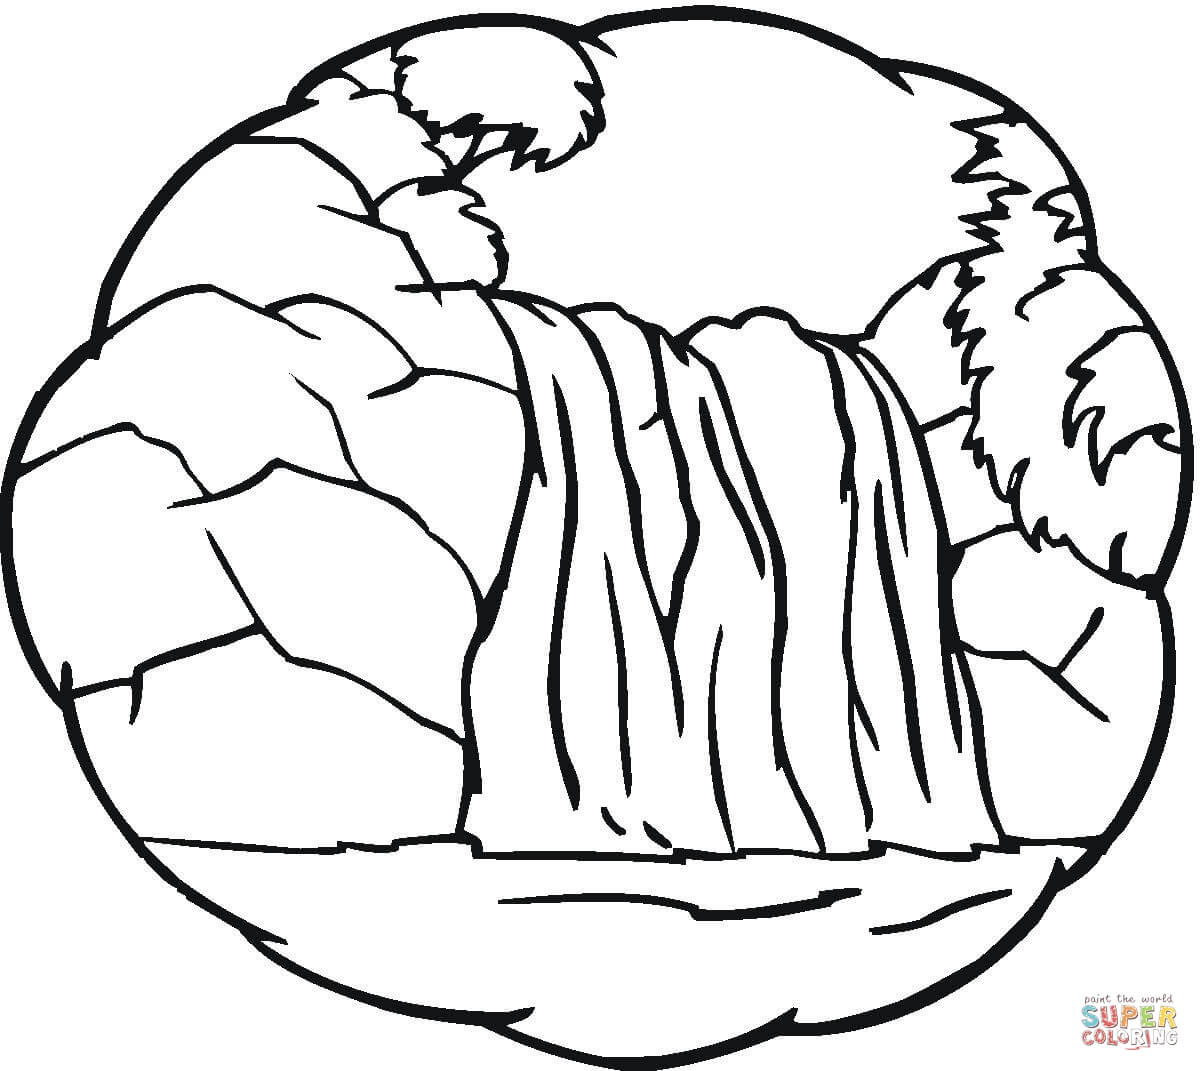 Little Waterfall Coloring Page   Free Printable Coloring Pages - Free Printable Waterfall Coloring Pages